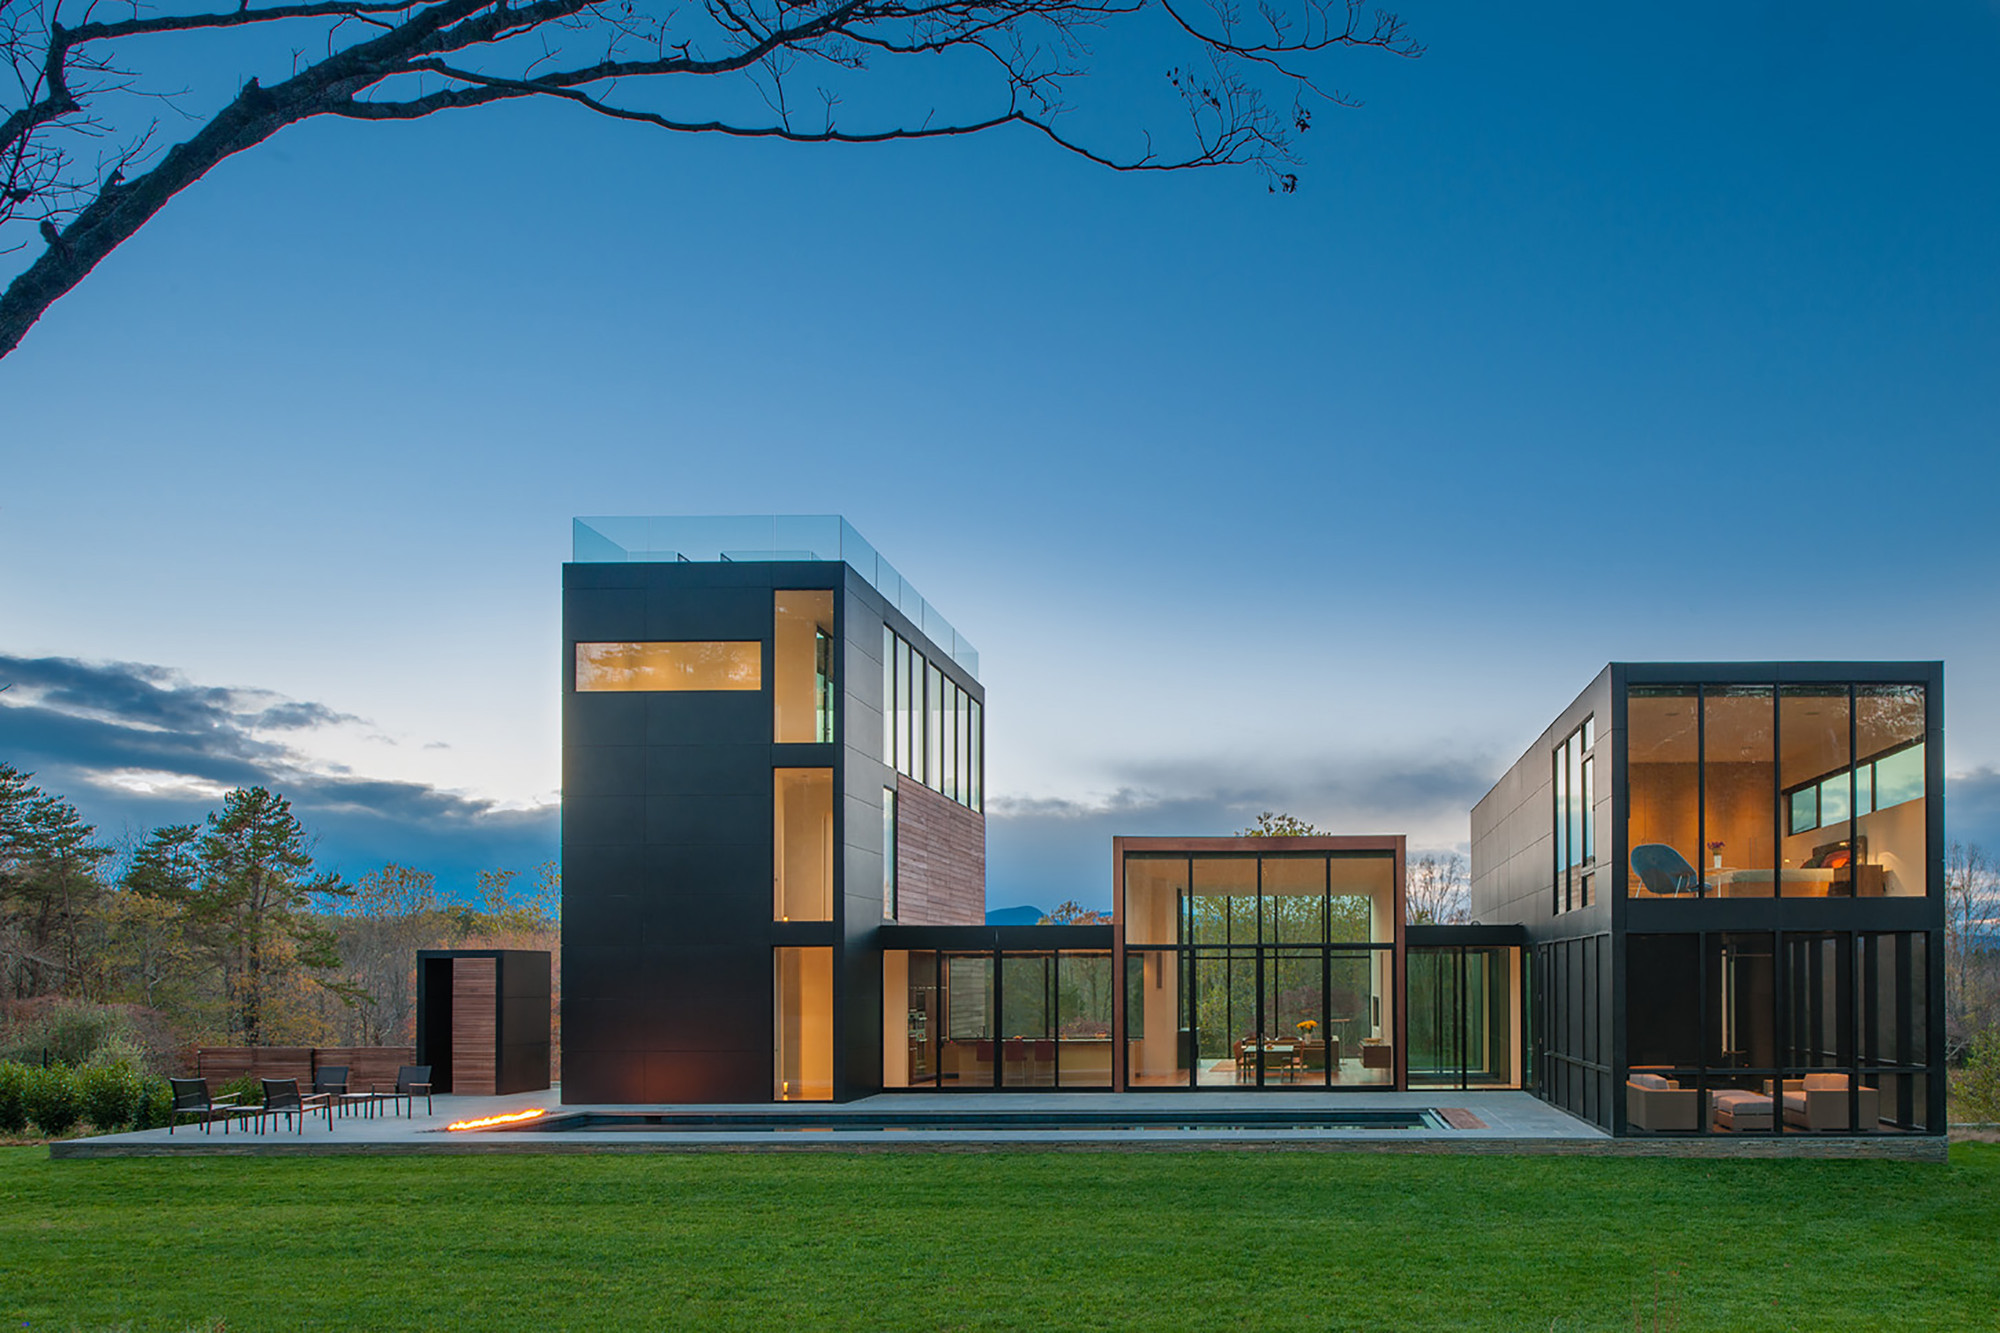 4 Springs Lane / Robert M. Gurney Architect, © Maxwell MacKenzie